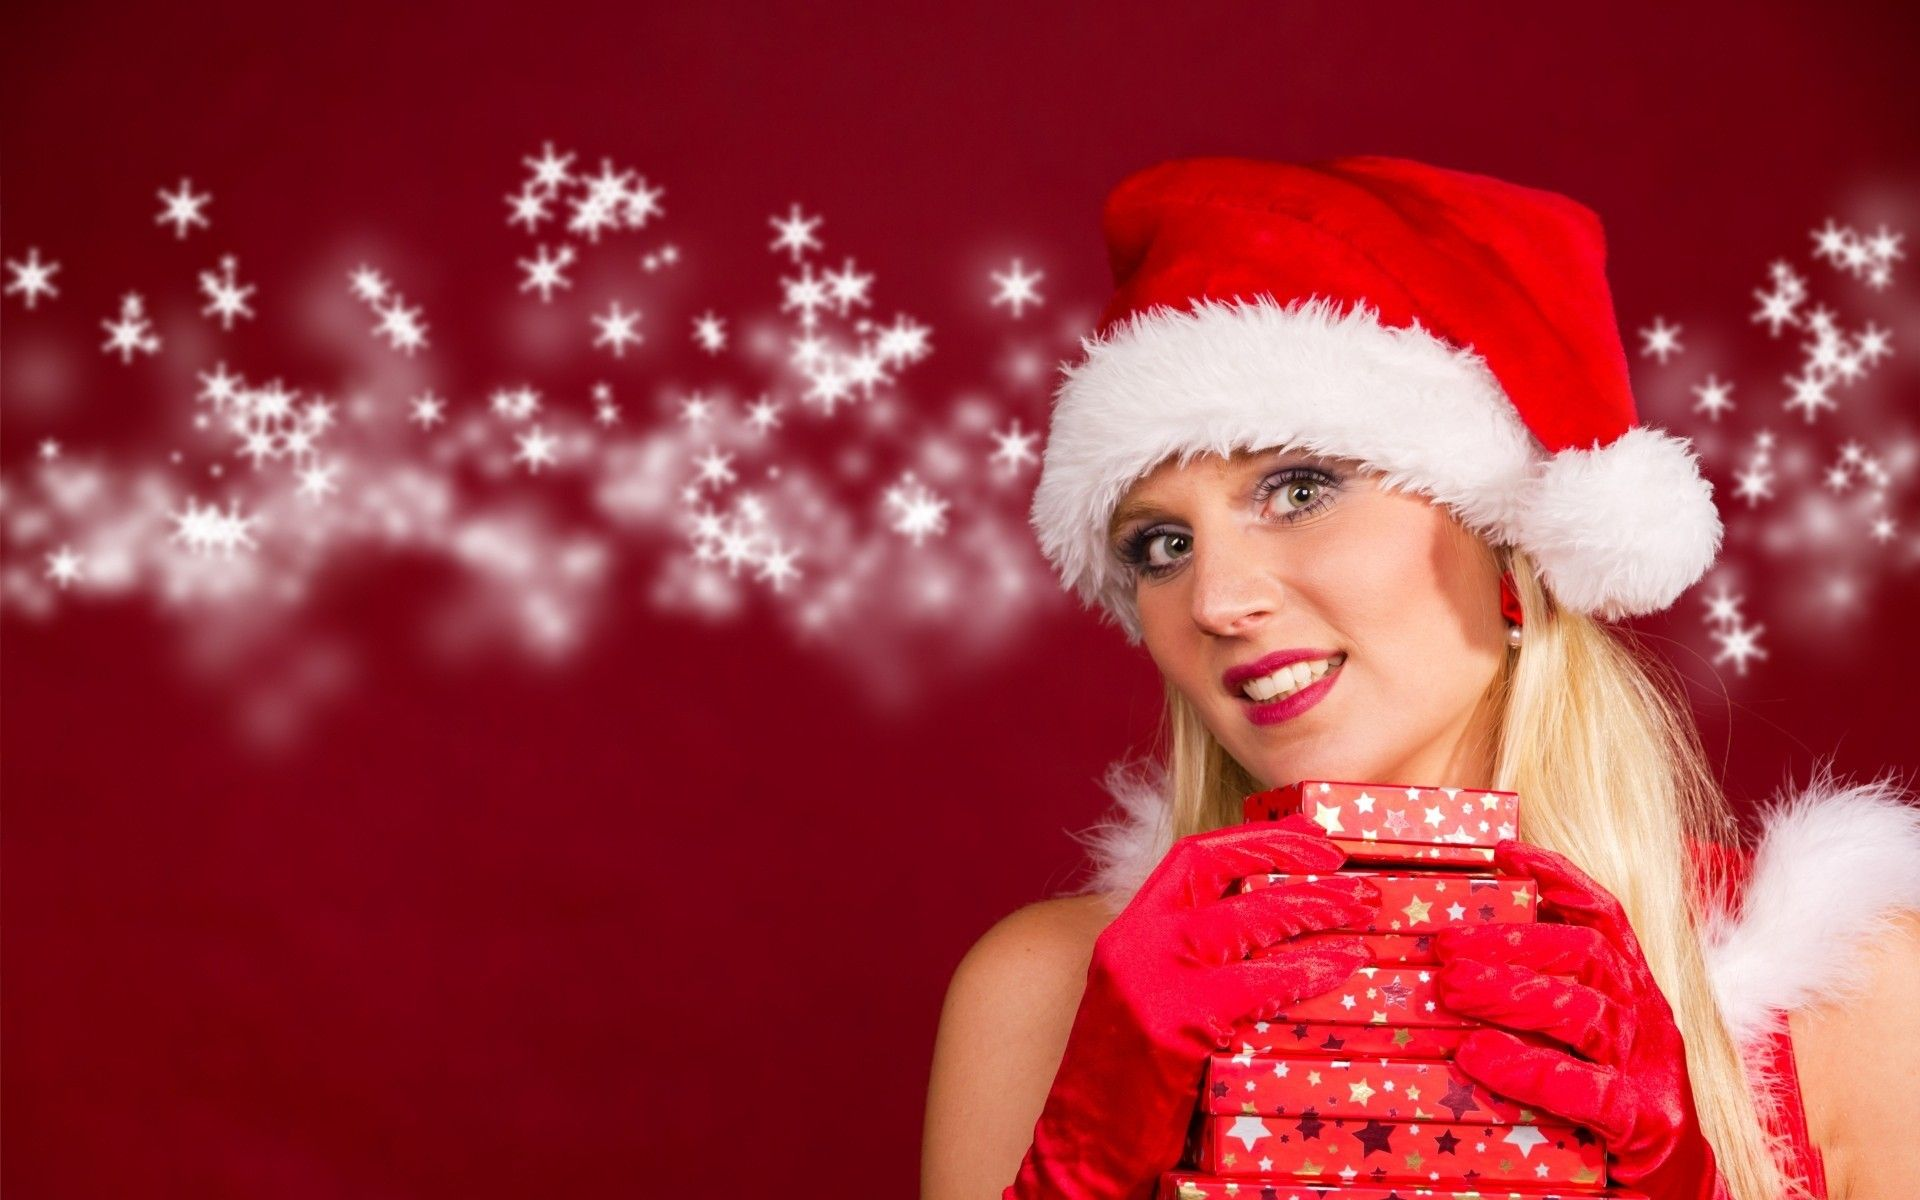 Christmas Girl Outfits Hd Wallpapers - Beautiful Christmas Santa Girl , HD Wallpaper & Backgrounds